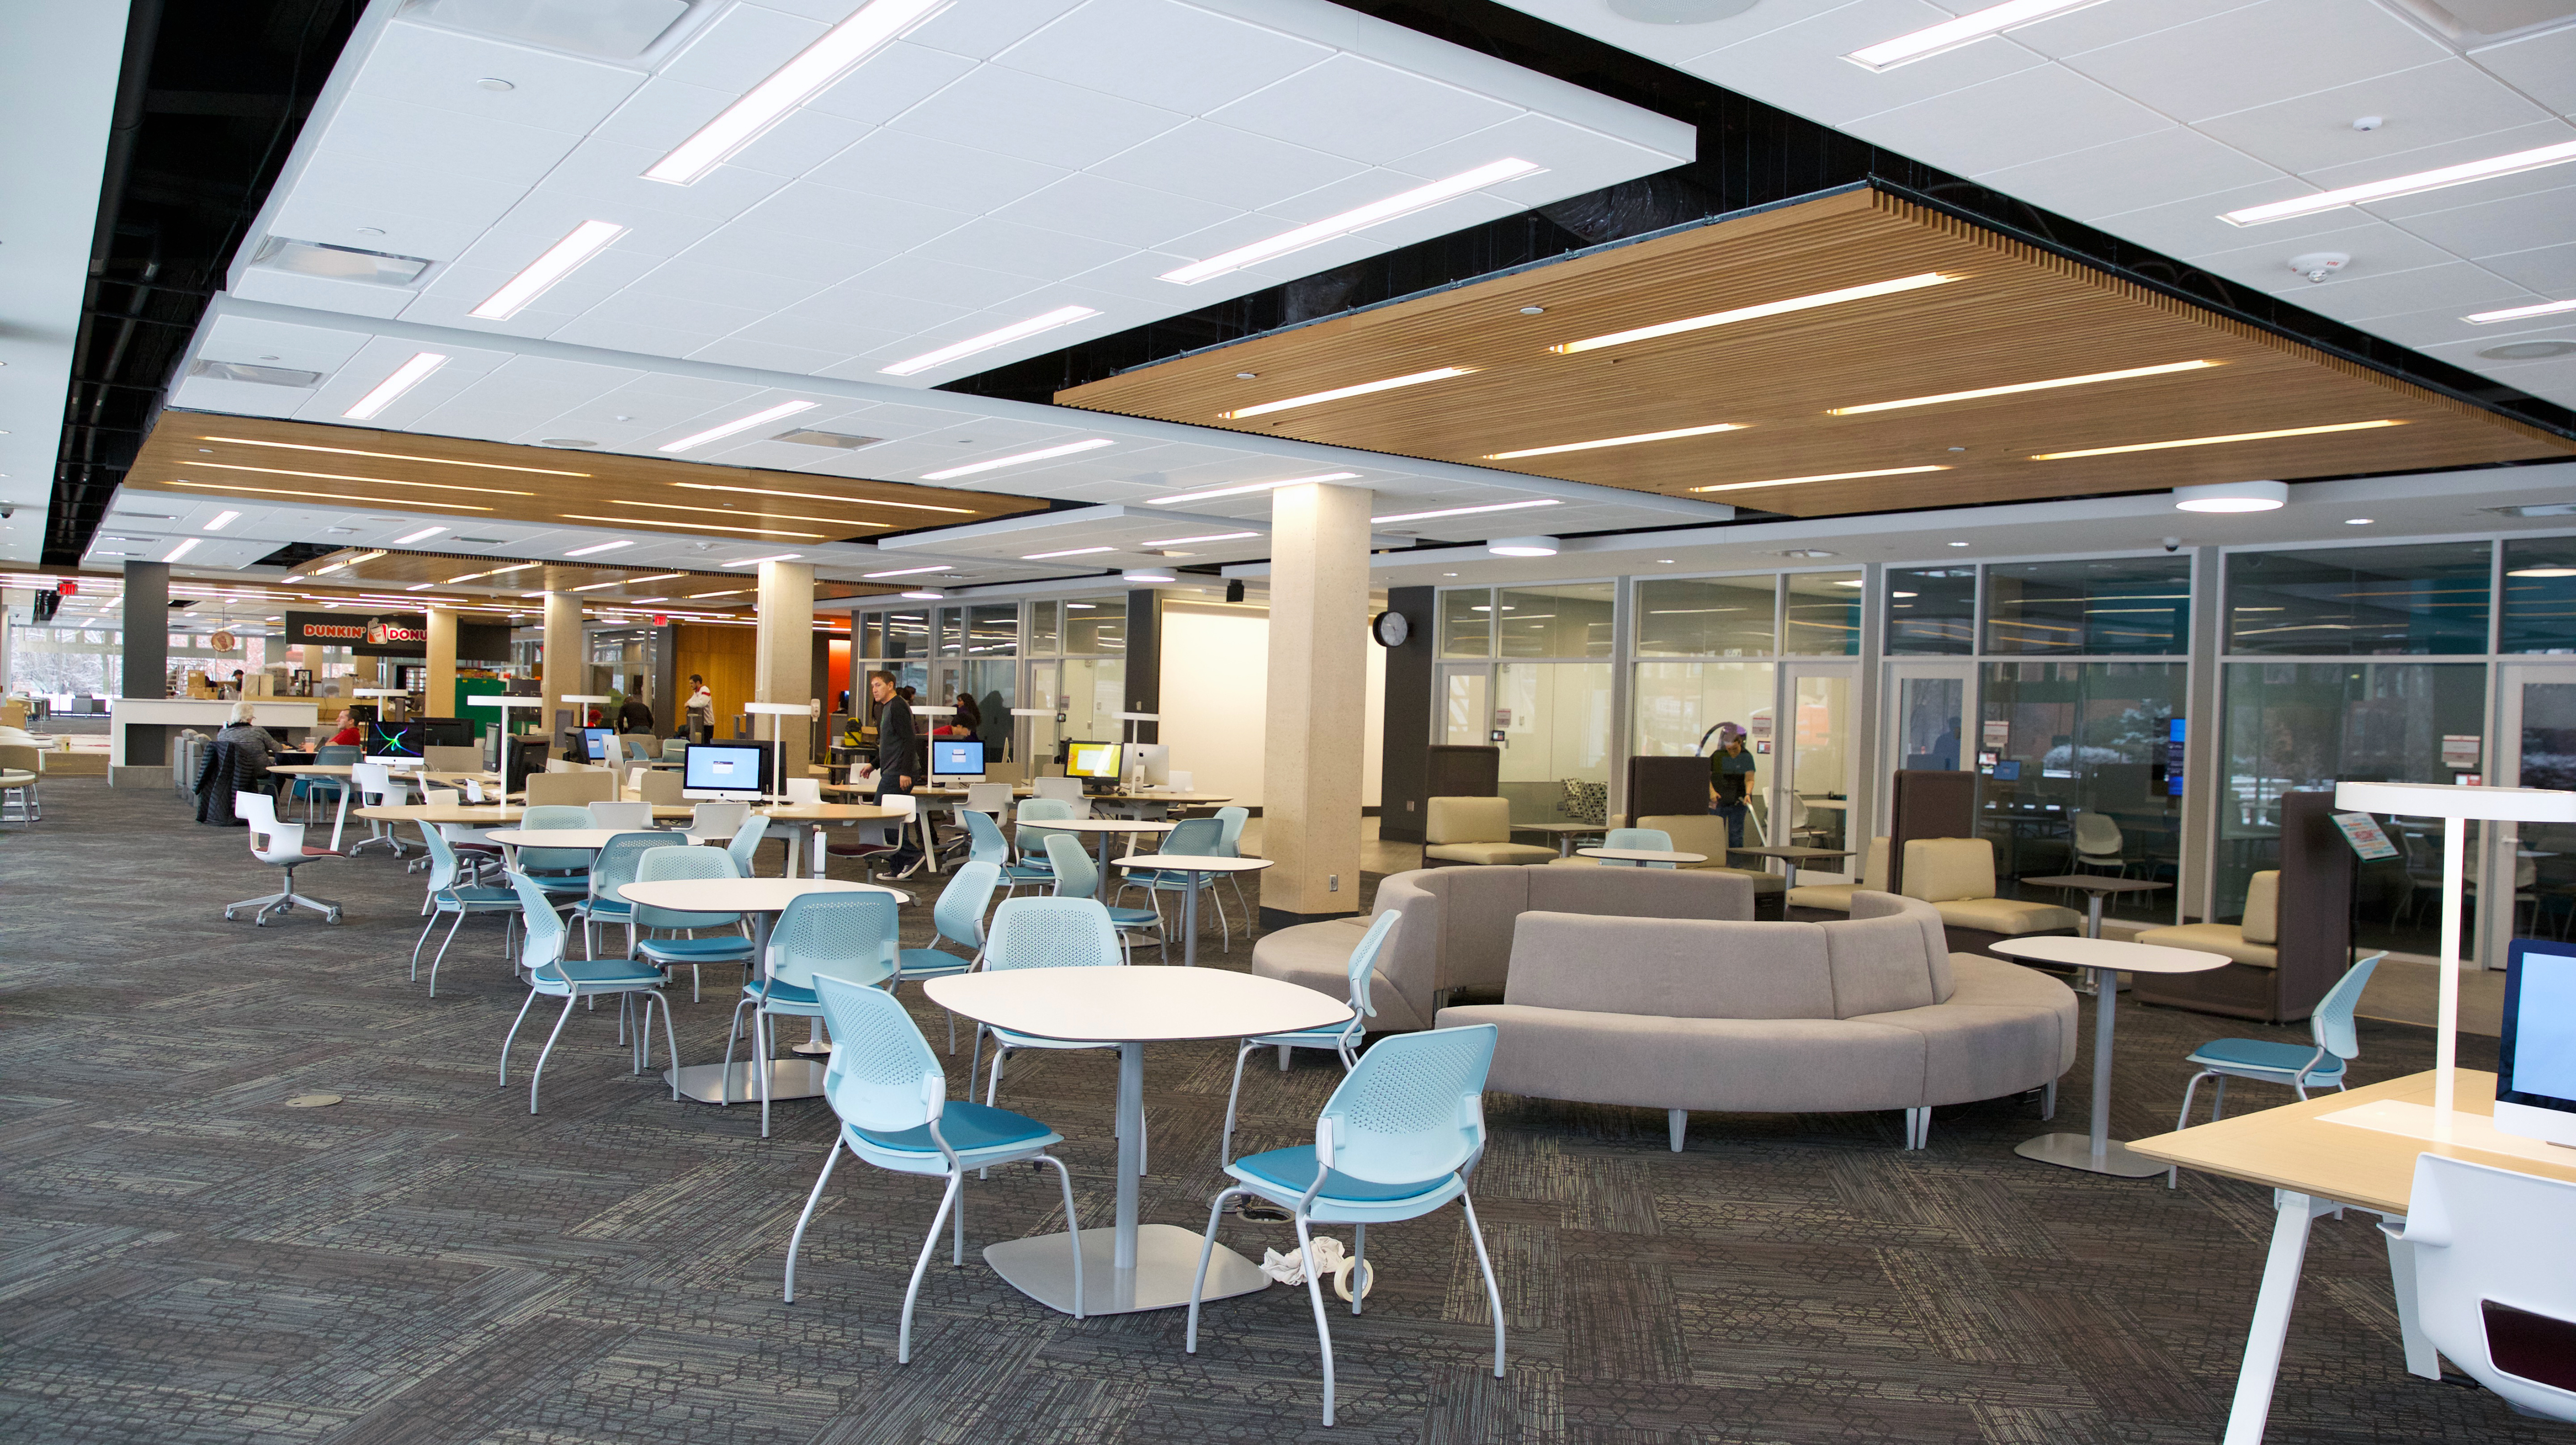 Adele Hall Learning Commons Offers High Tech Space For Unl